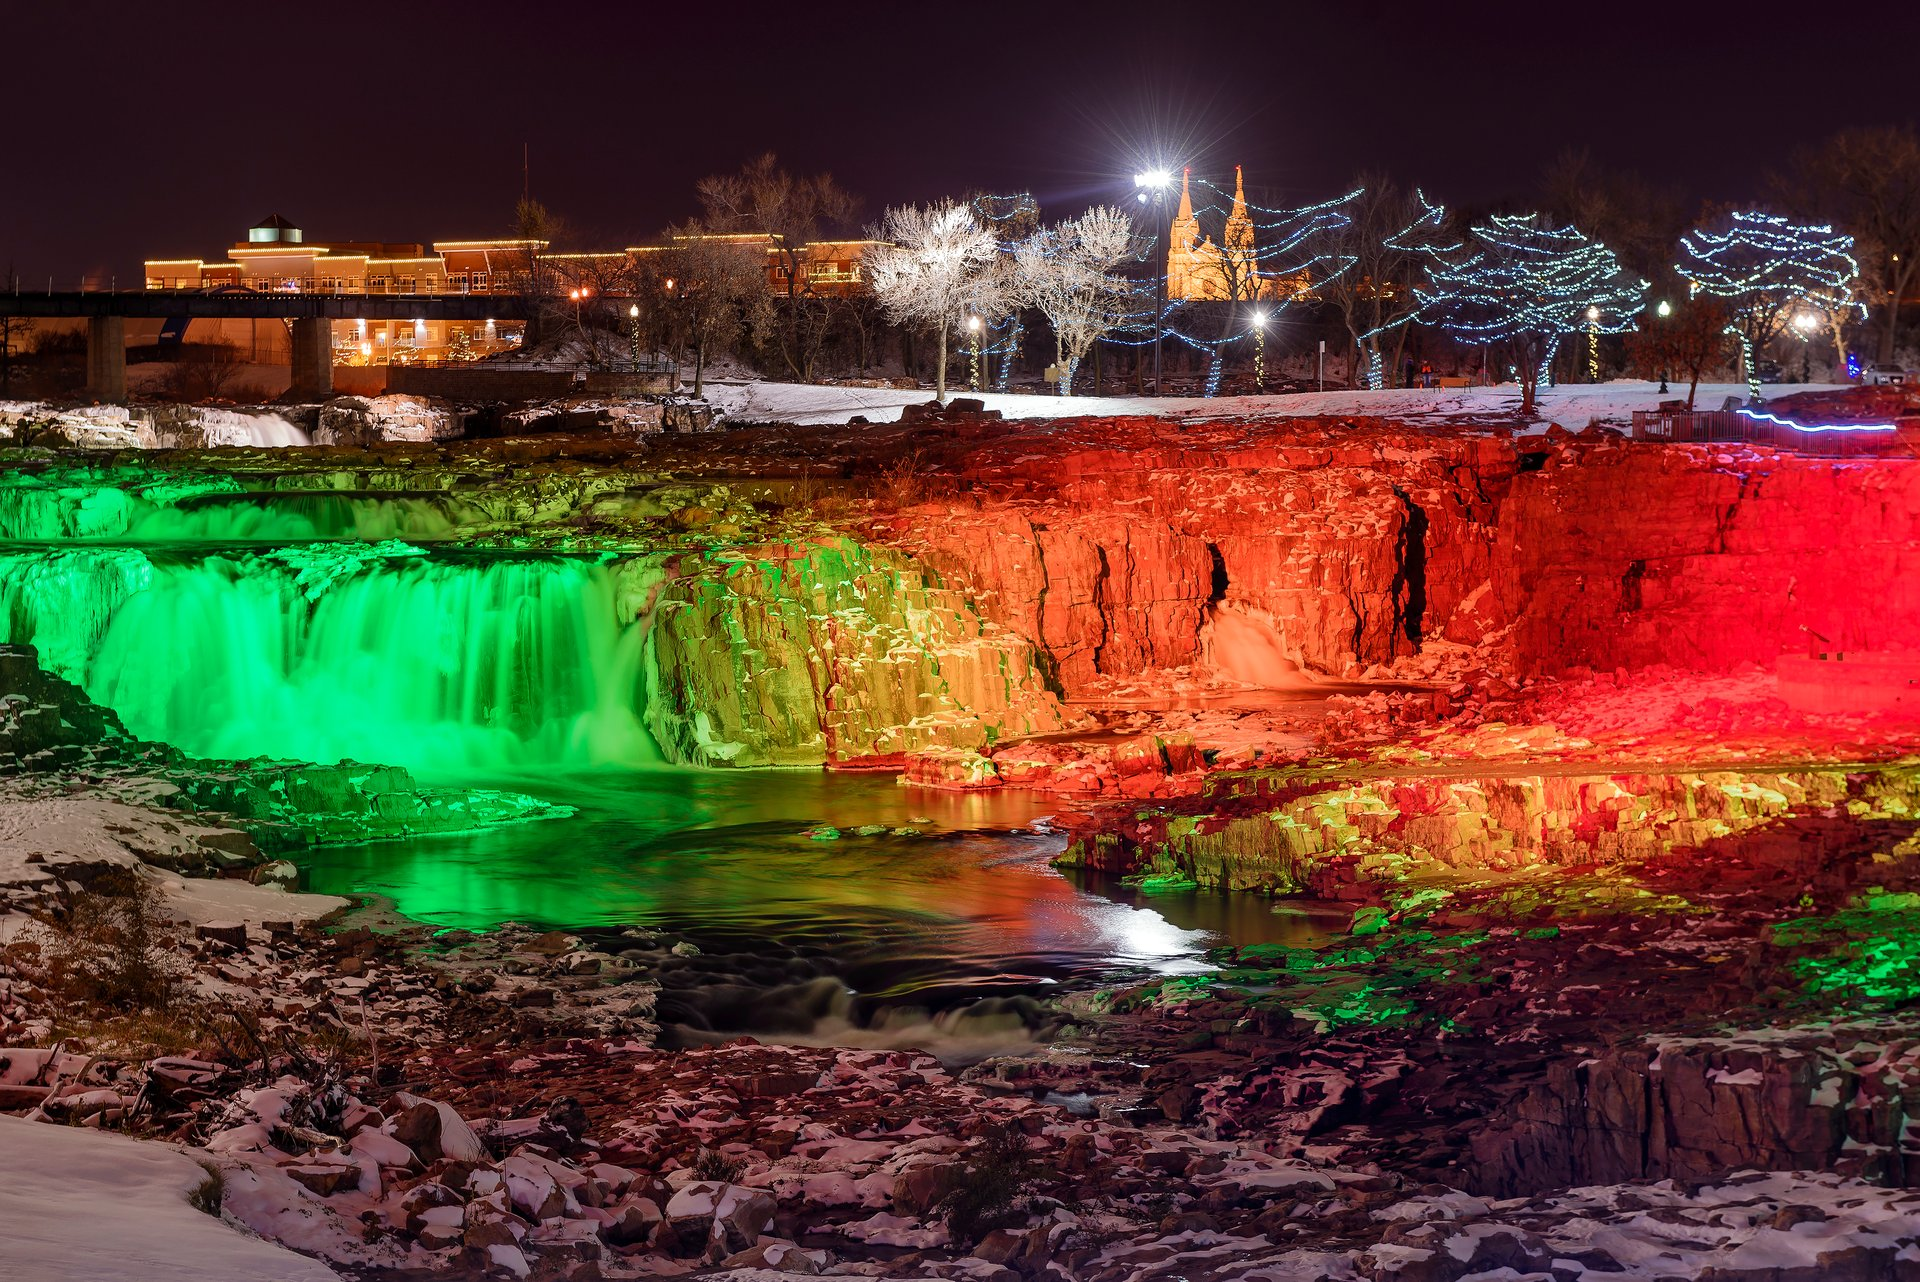 Winter Wonderland at Falls Park in South Dakota 2020 - Best Time